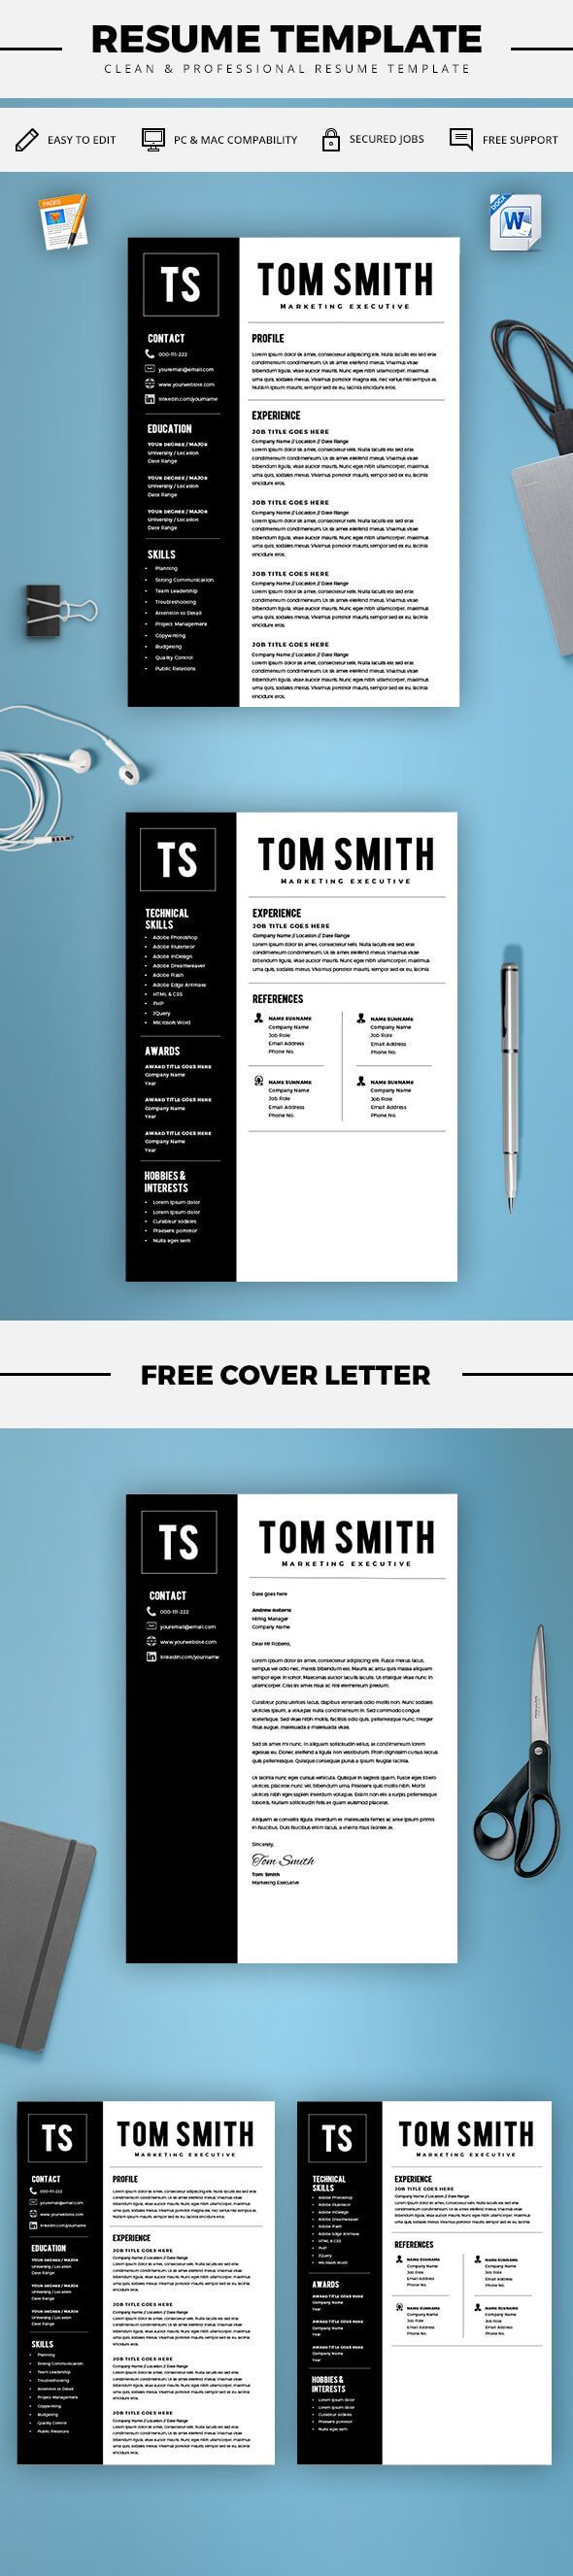 bartender job description resume%0A best cover letter builder ideas pinterest resume two page template free